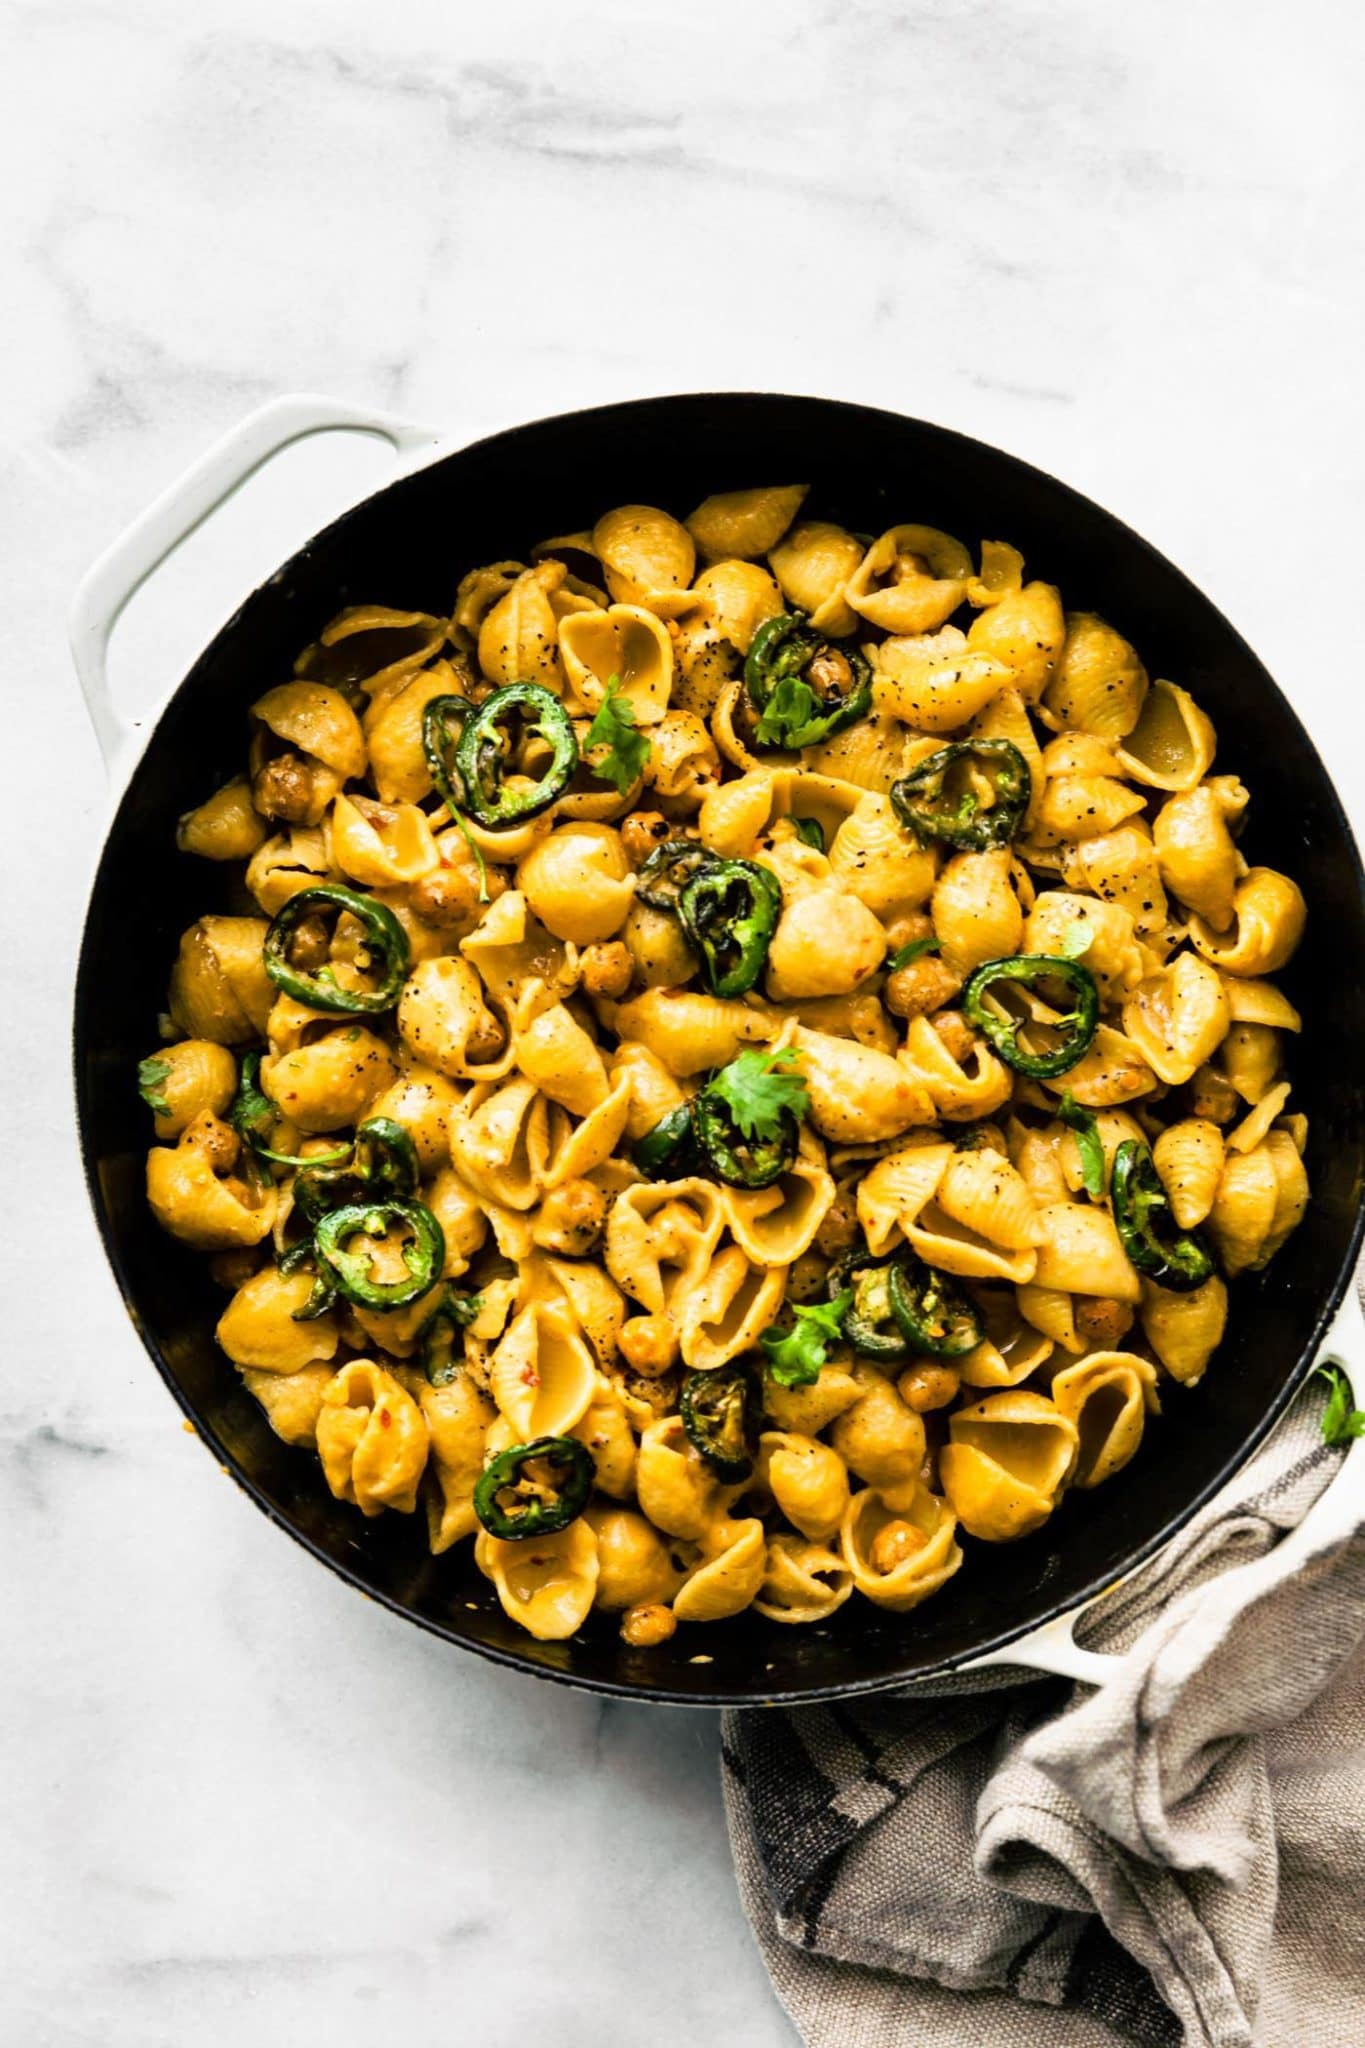 Vegan Jalapeño Chickpea Mac and Cheese in a skillet on a marble counter